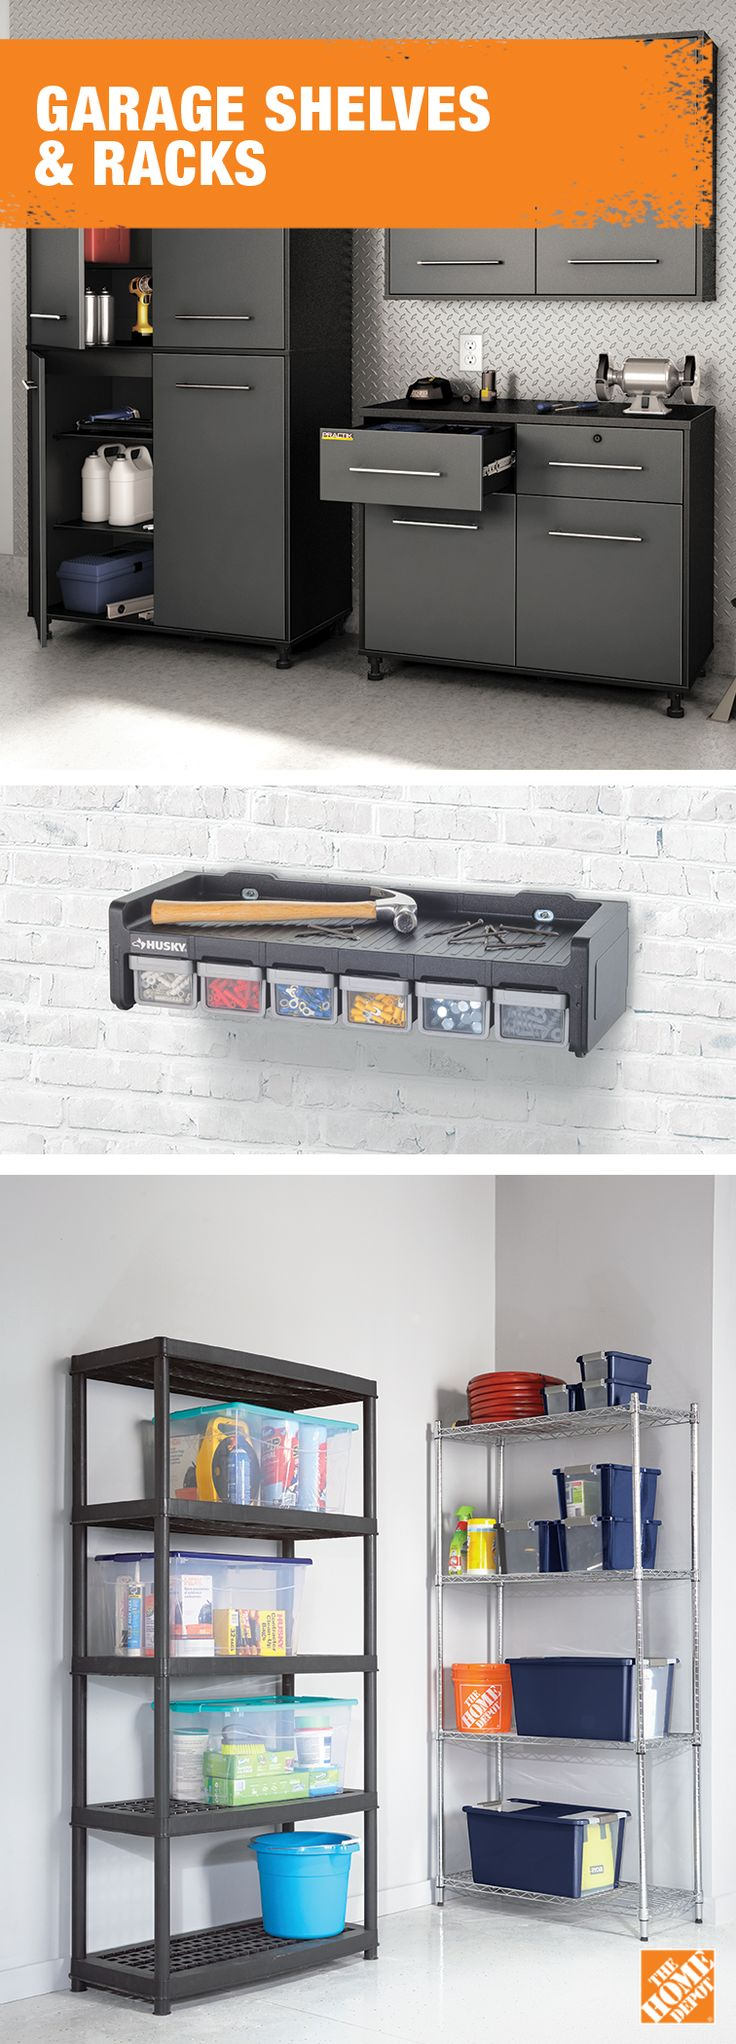 Heavy duty supplies call for heavy duty shelving. For more  storage solutions, visit  homedepot.ca: http://hdepot.ca/2wh4REA